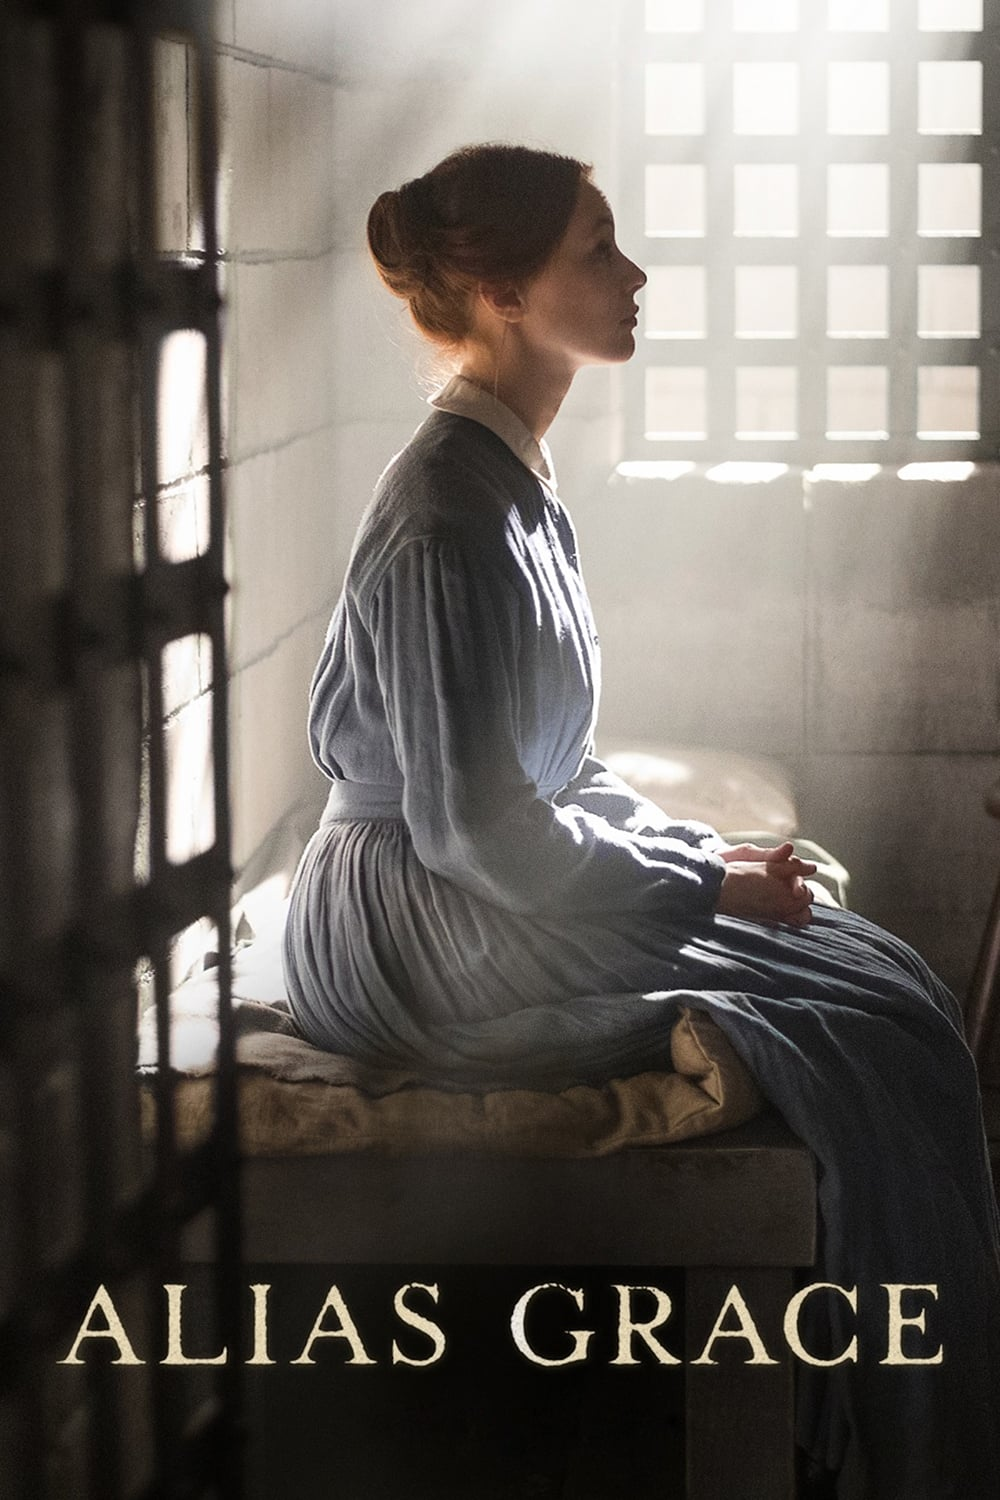 Caratula de Alias Grace (Alias Grace)